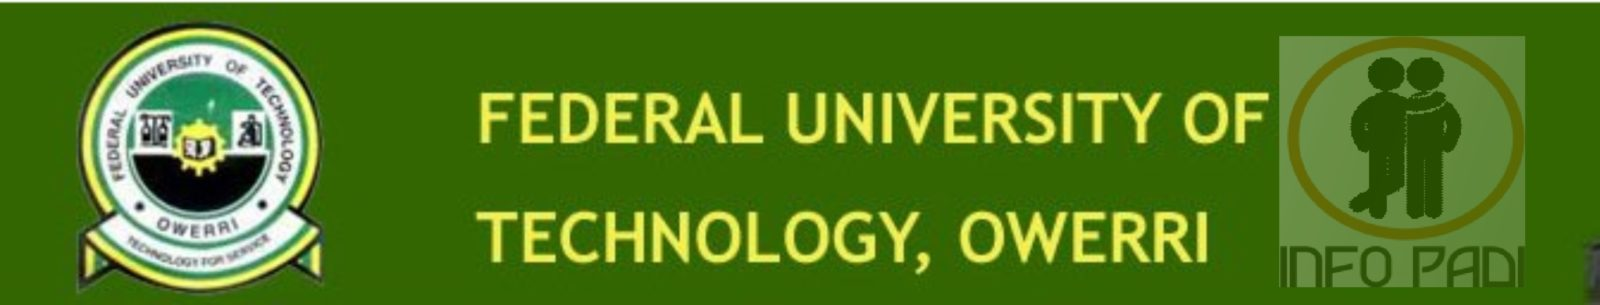 Federal University Of Technology Owerri (FUTO) Post-UTME 2018/2019 Screening Exercise/ Form